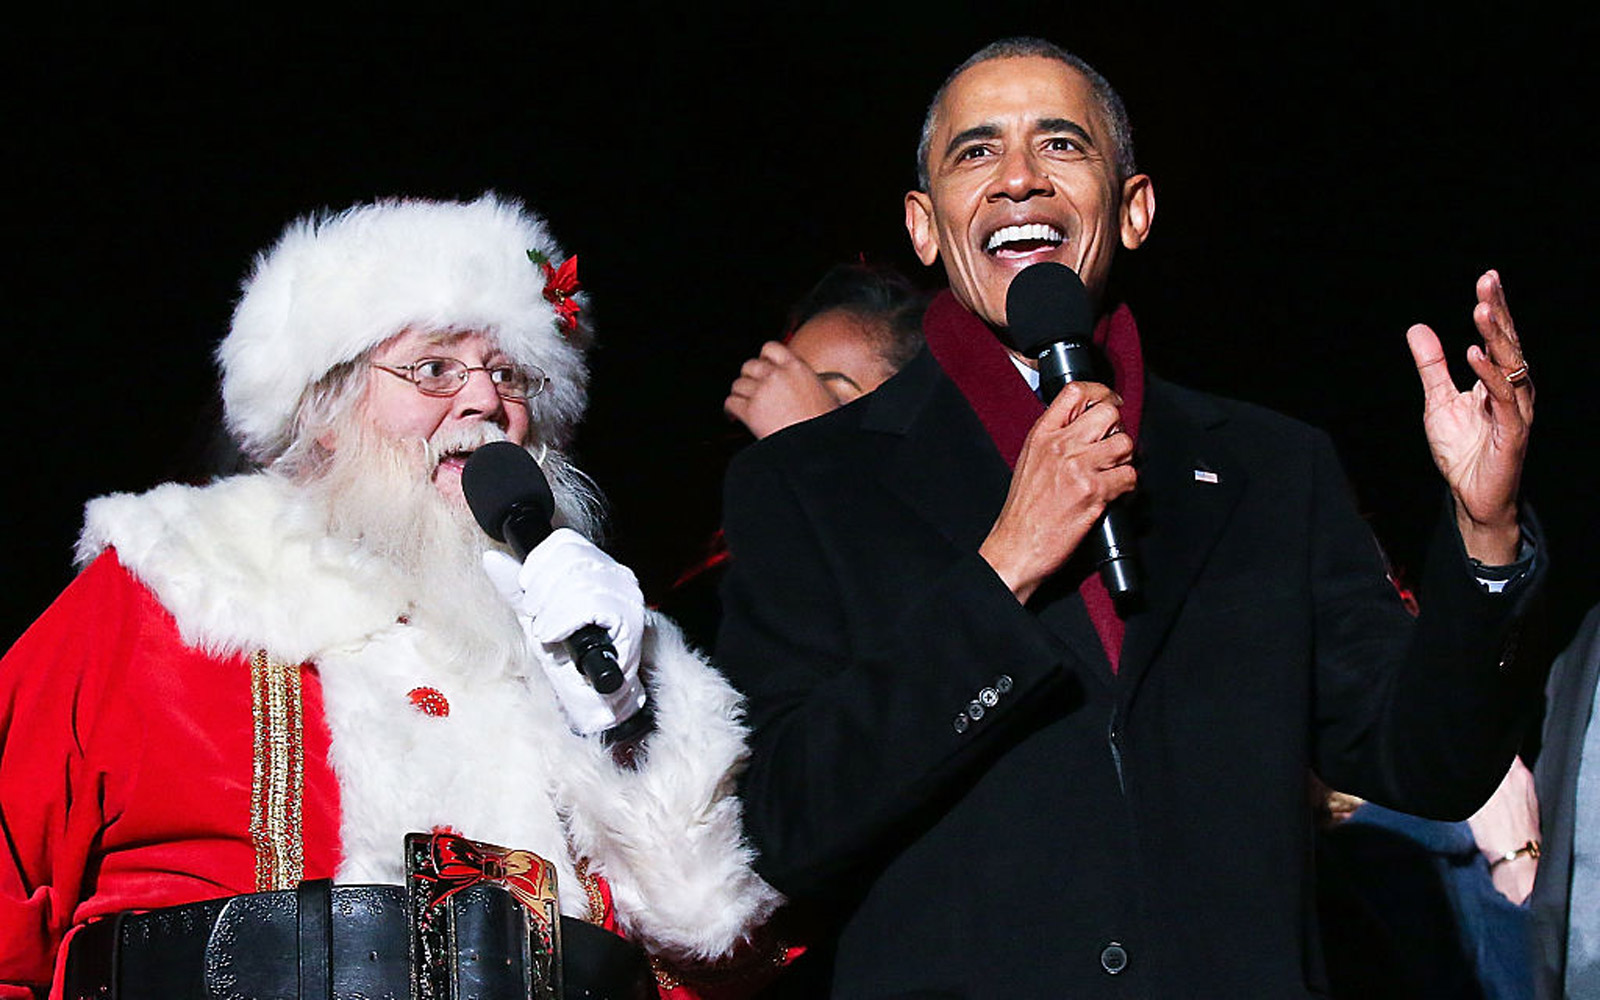 """WASHINGTON, DC - DECEMBER 01:  President Barack Obama sings """"Jingle Bells"""" with Santa Claus during the 94th Annual National Christmas Tree Lighting Ceremony on the Ellipse in PresidentÕs Park on December 1, 2016 in Washington, DC.  (Photo by Paul Morigi/"""